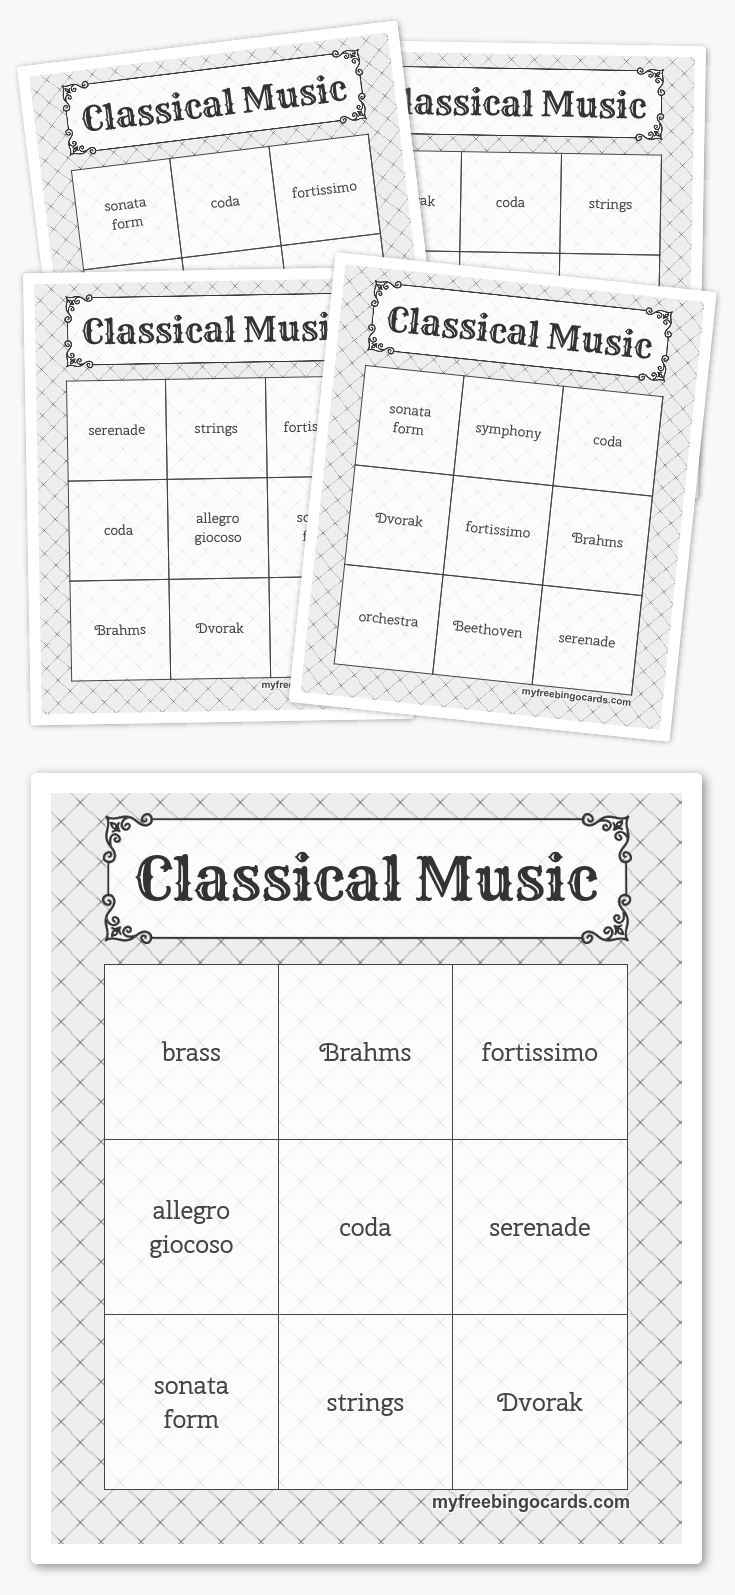 photo relating to Musical Bingo Cards Printable referred to as Clical Tunes Bingo Bible/Research Absolutely free printable bingo